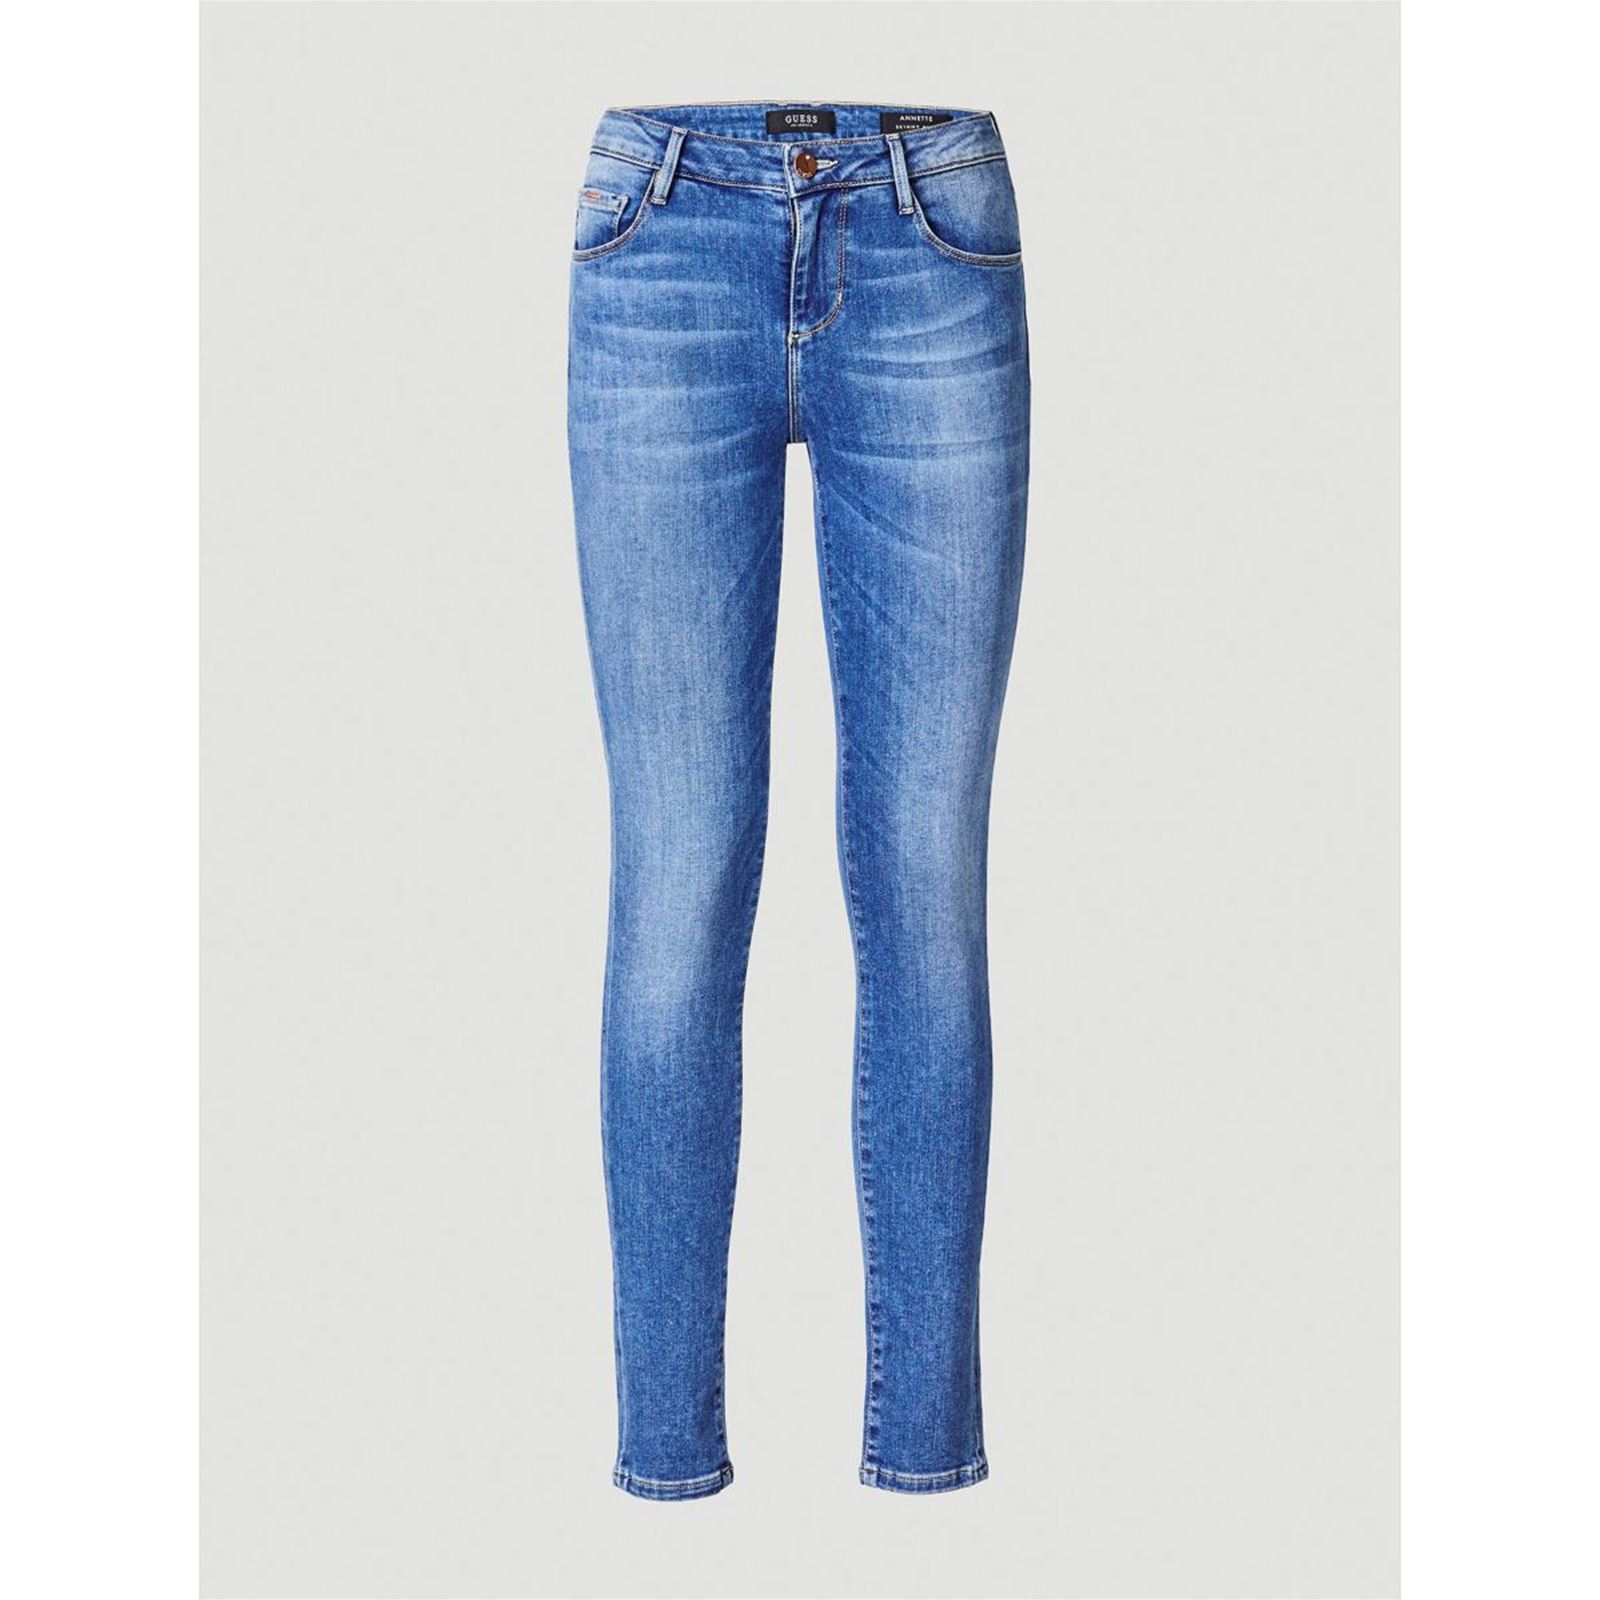 4cbbdc0dc305 Guess Jean skinny taille haute - bleu